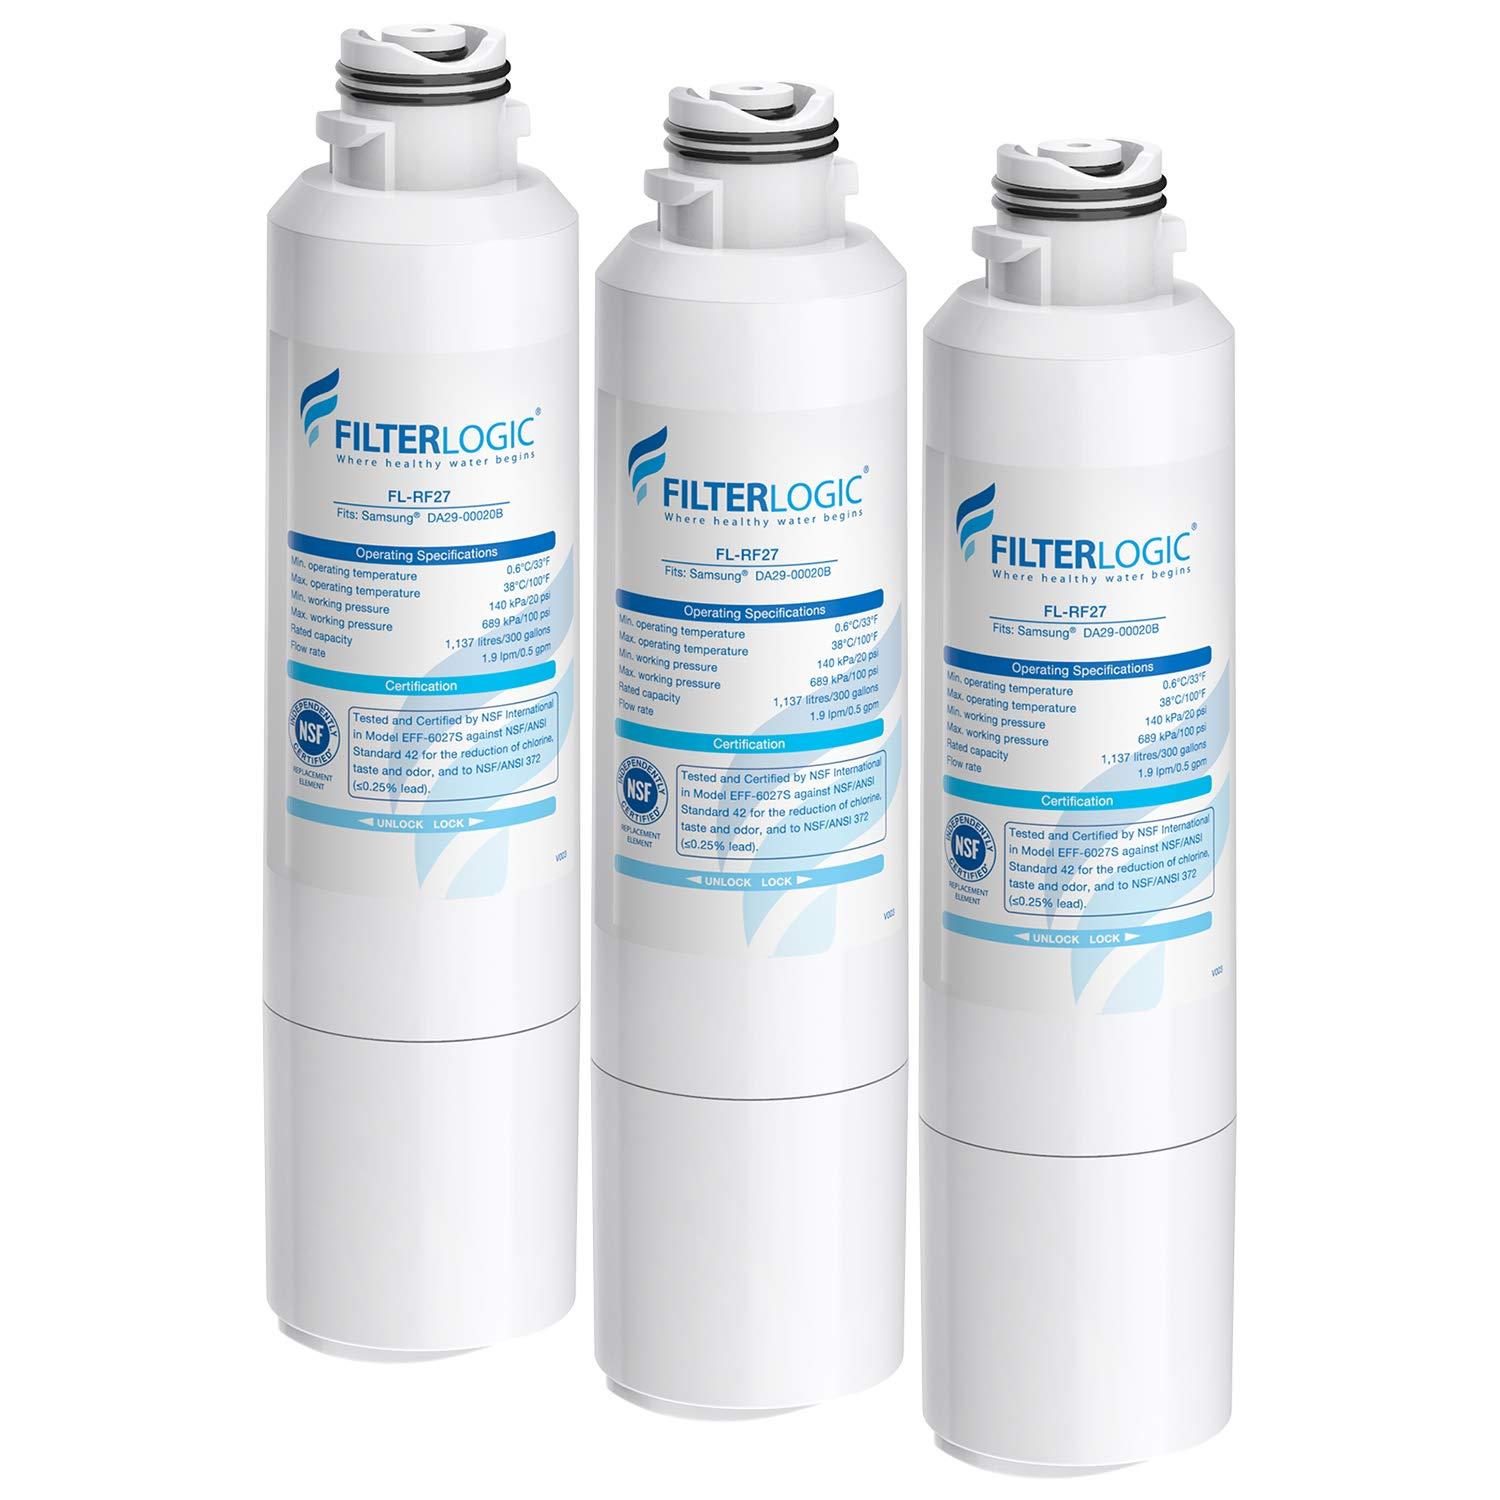 FilterLogic DA29-00020B Refrigerator Water Filter, Replacement for Samsung HAF-CIN, HAF-CIN/EXP, DA29-00020A/B, DA97-08006A, DA2900020B, RF28HMEDBSR, RF4287HARS, 3 Filters, Package may vary